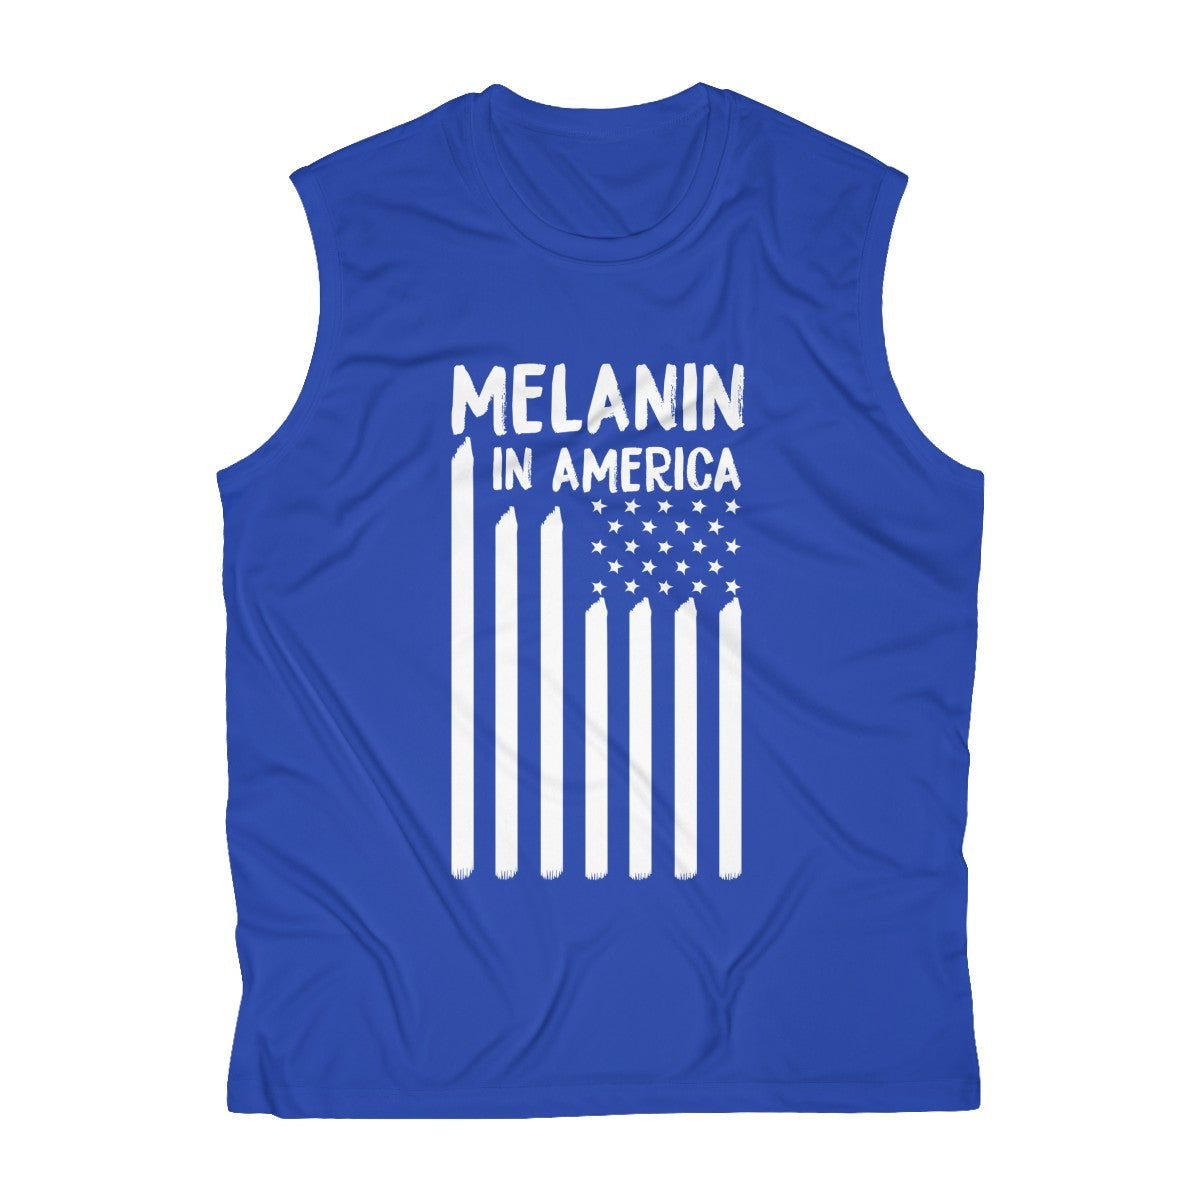 Melanin in America Men's Sleeveless Performance Tee